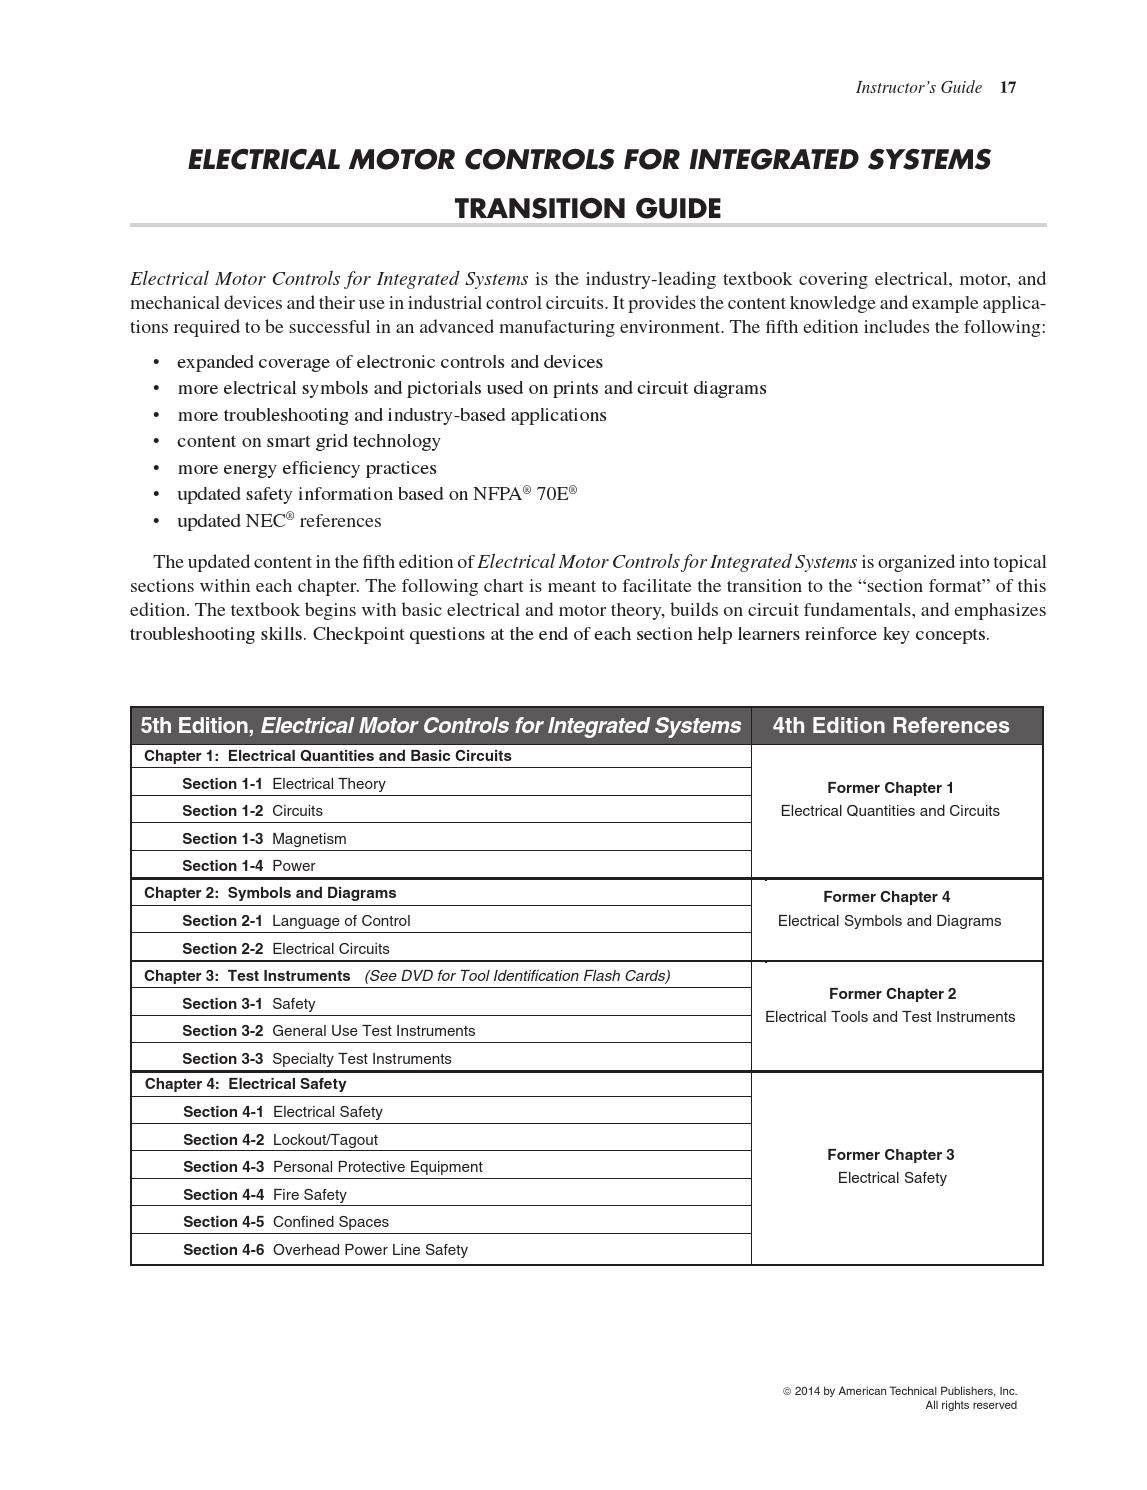 Emcrg transitionguide by american technical publishers issuu for Electrical motor controls for integrated systems fifth edition